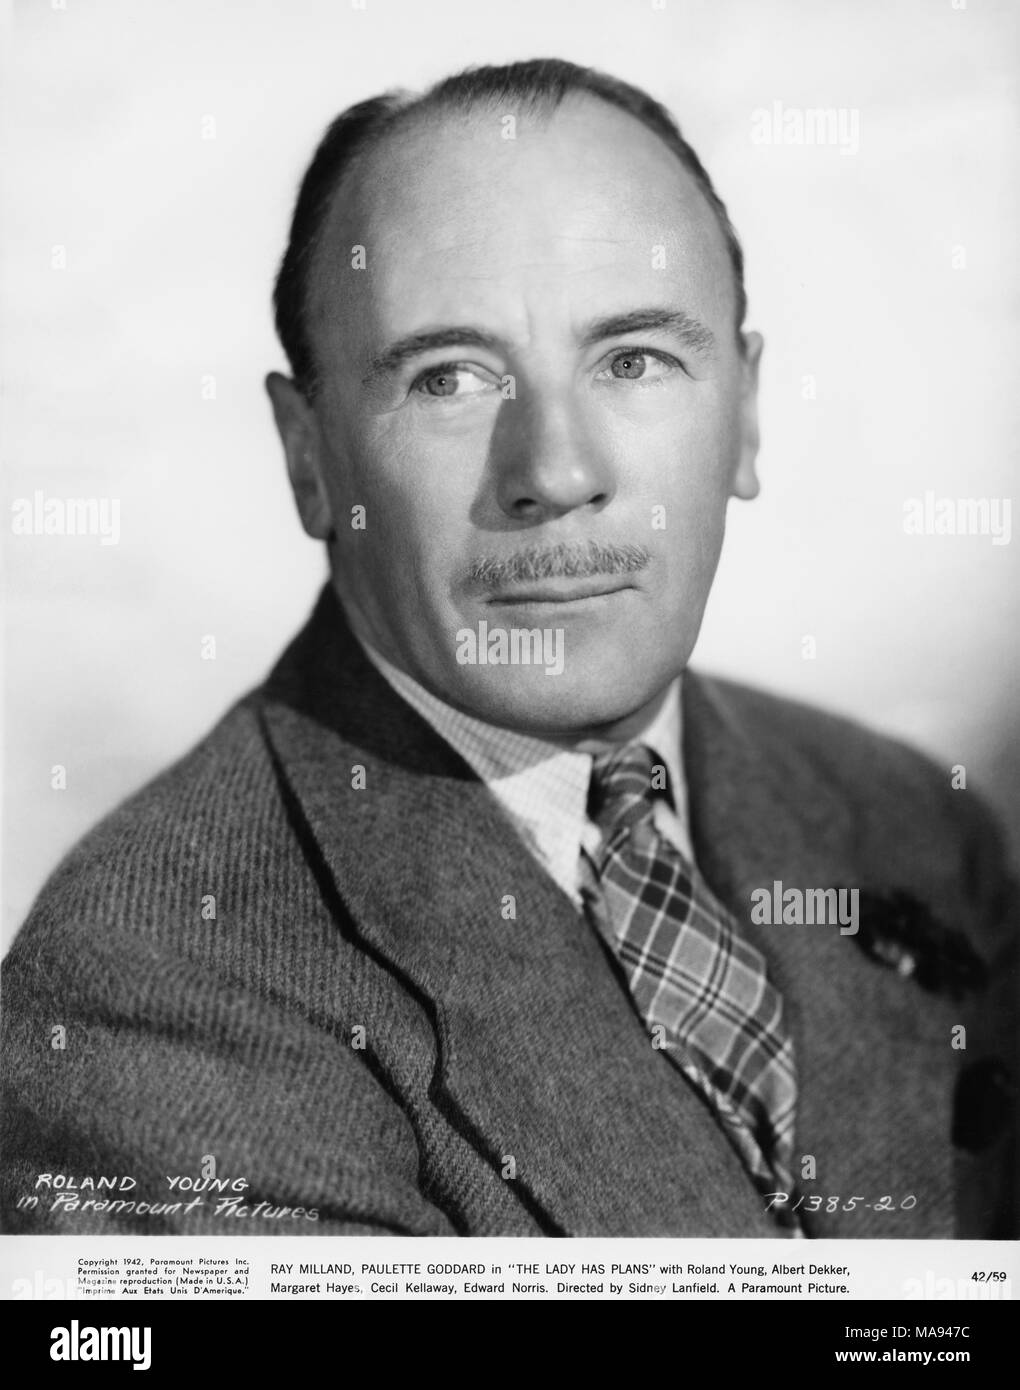 Roland Young, Publicity Portrait for the Film, 'The Lady has Plans', Paramount Pictures, 1942 - Stock Image